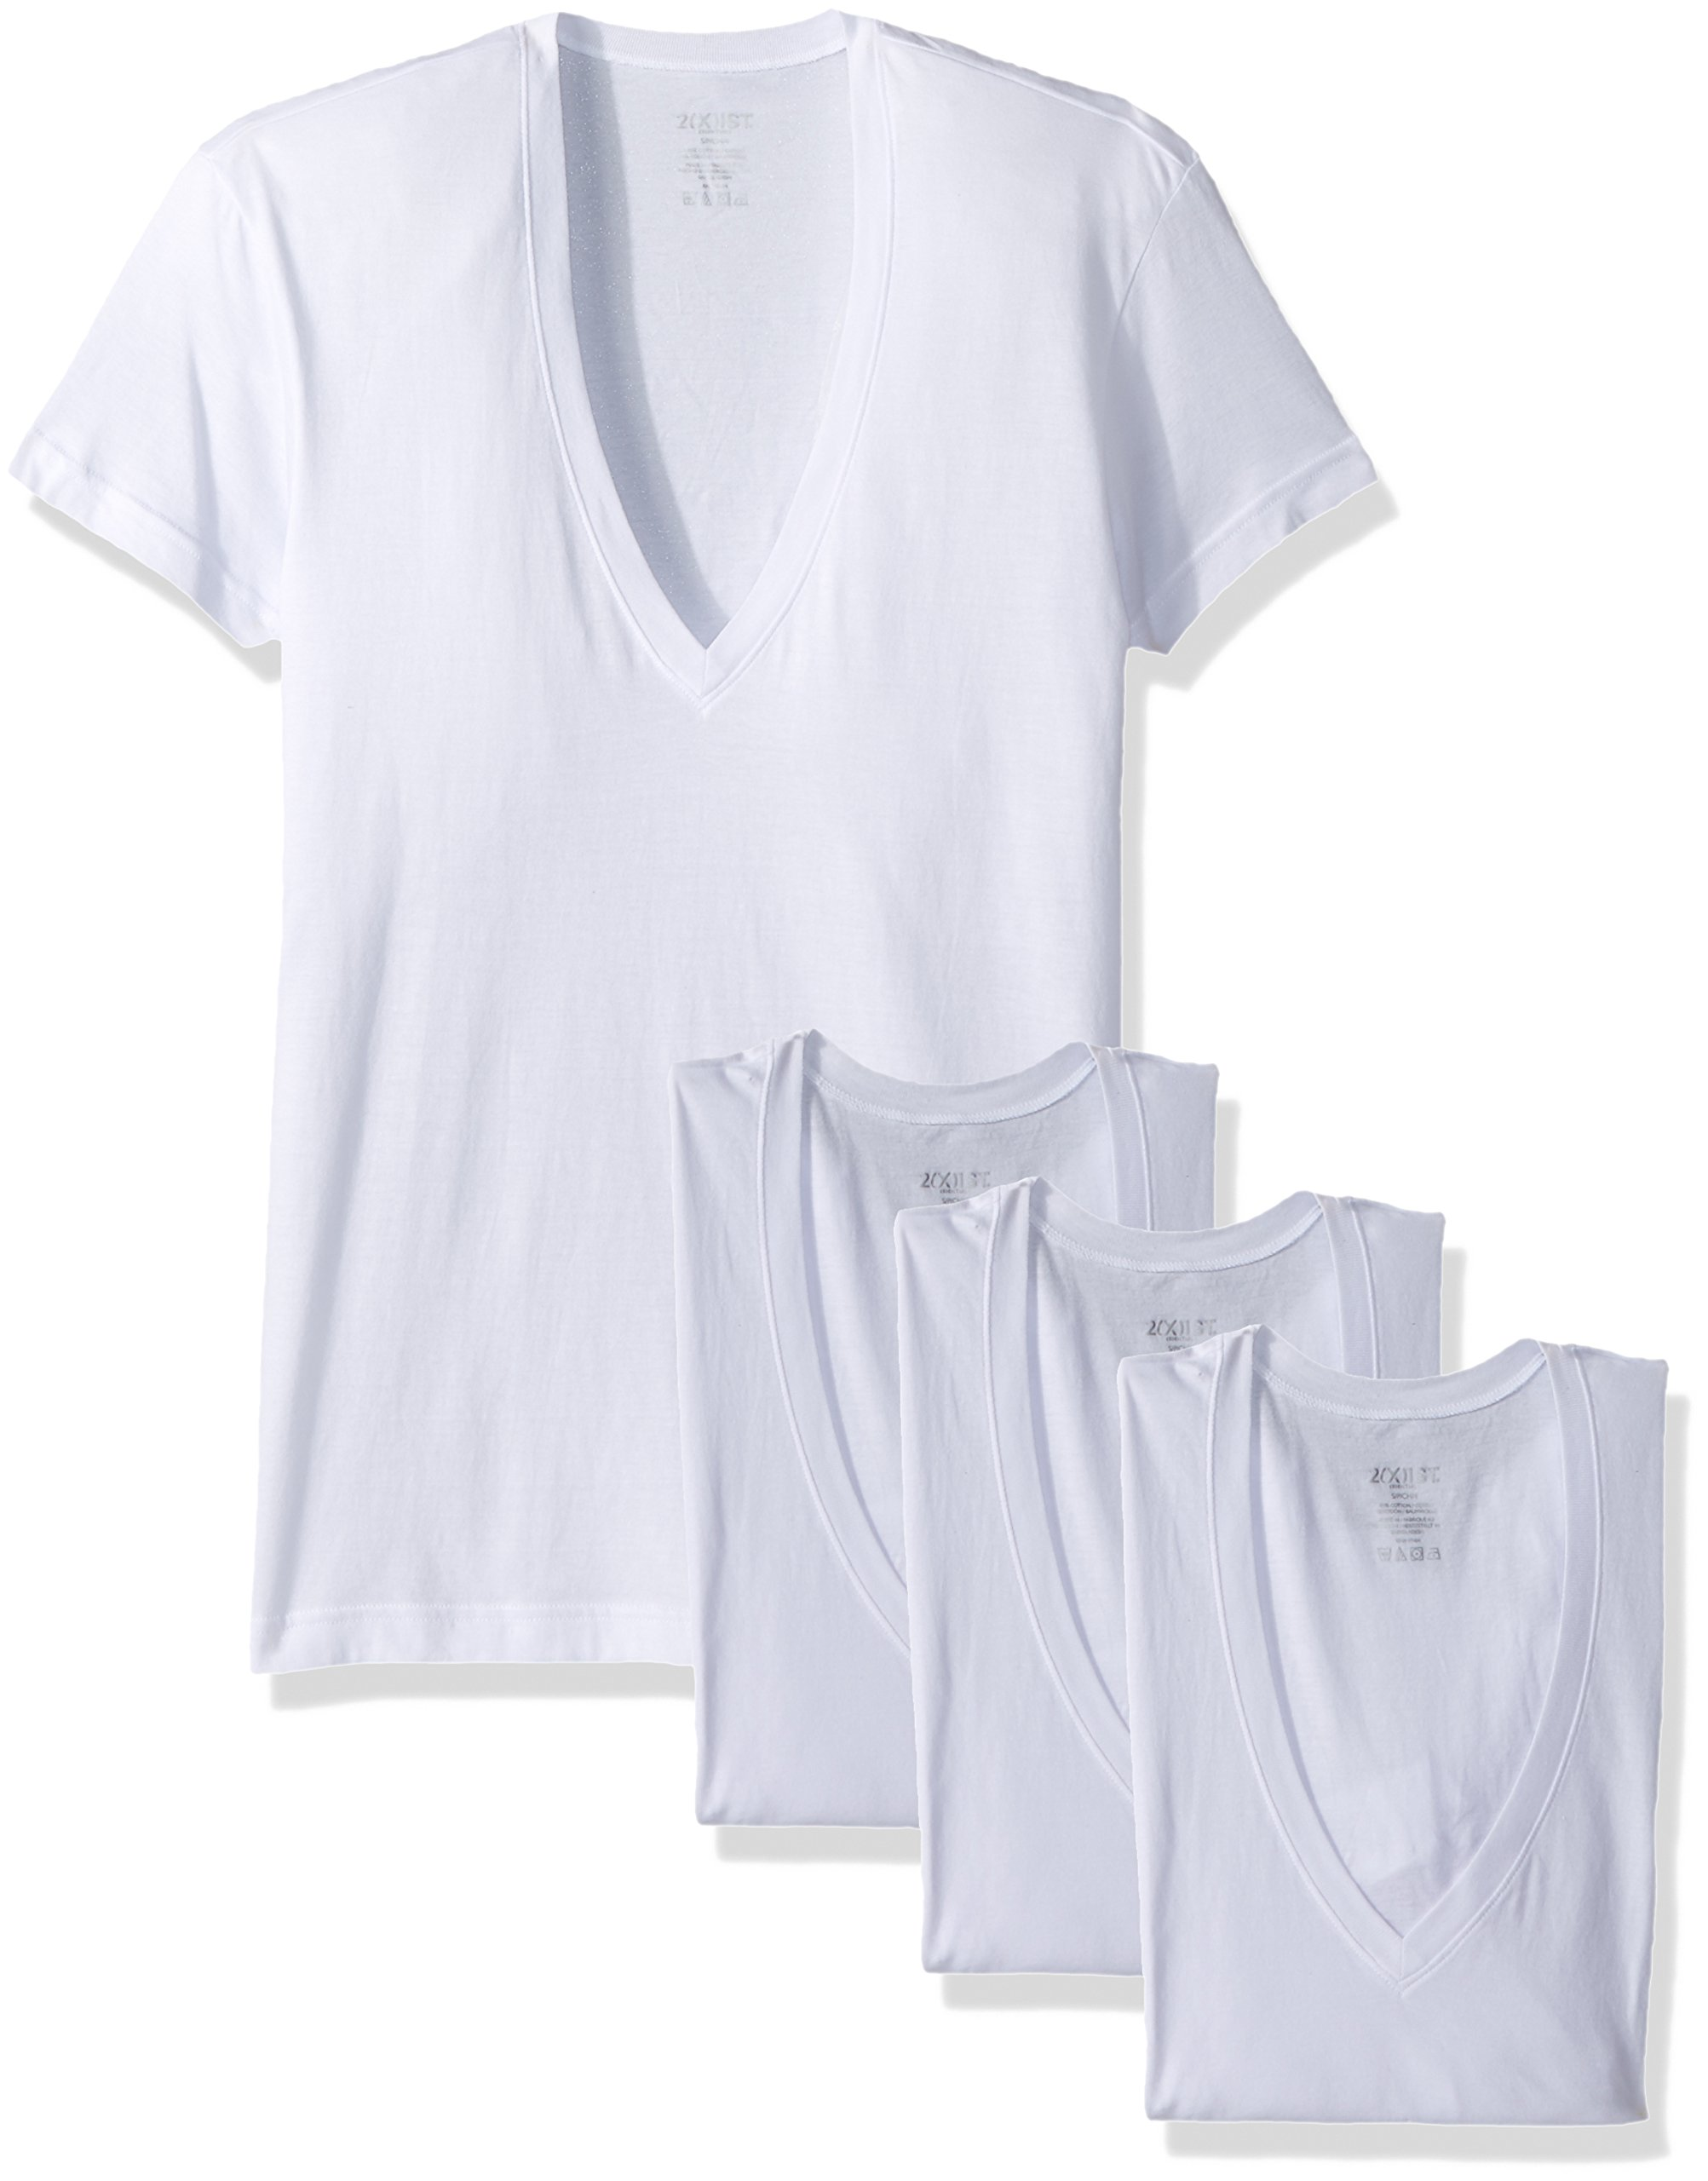 2(X)IST Men's Essential Slim Fit Deep V Neck T-Shirts - 3 Pack (020351) Underwear, White Natural, X-Large by 2(X)IST